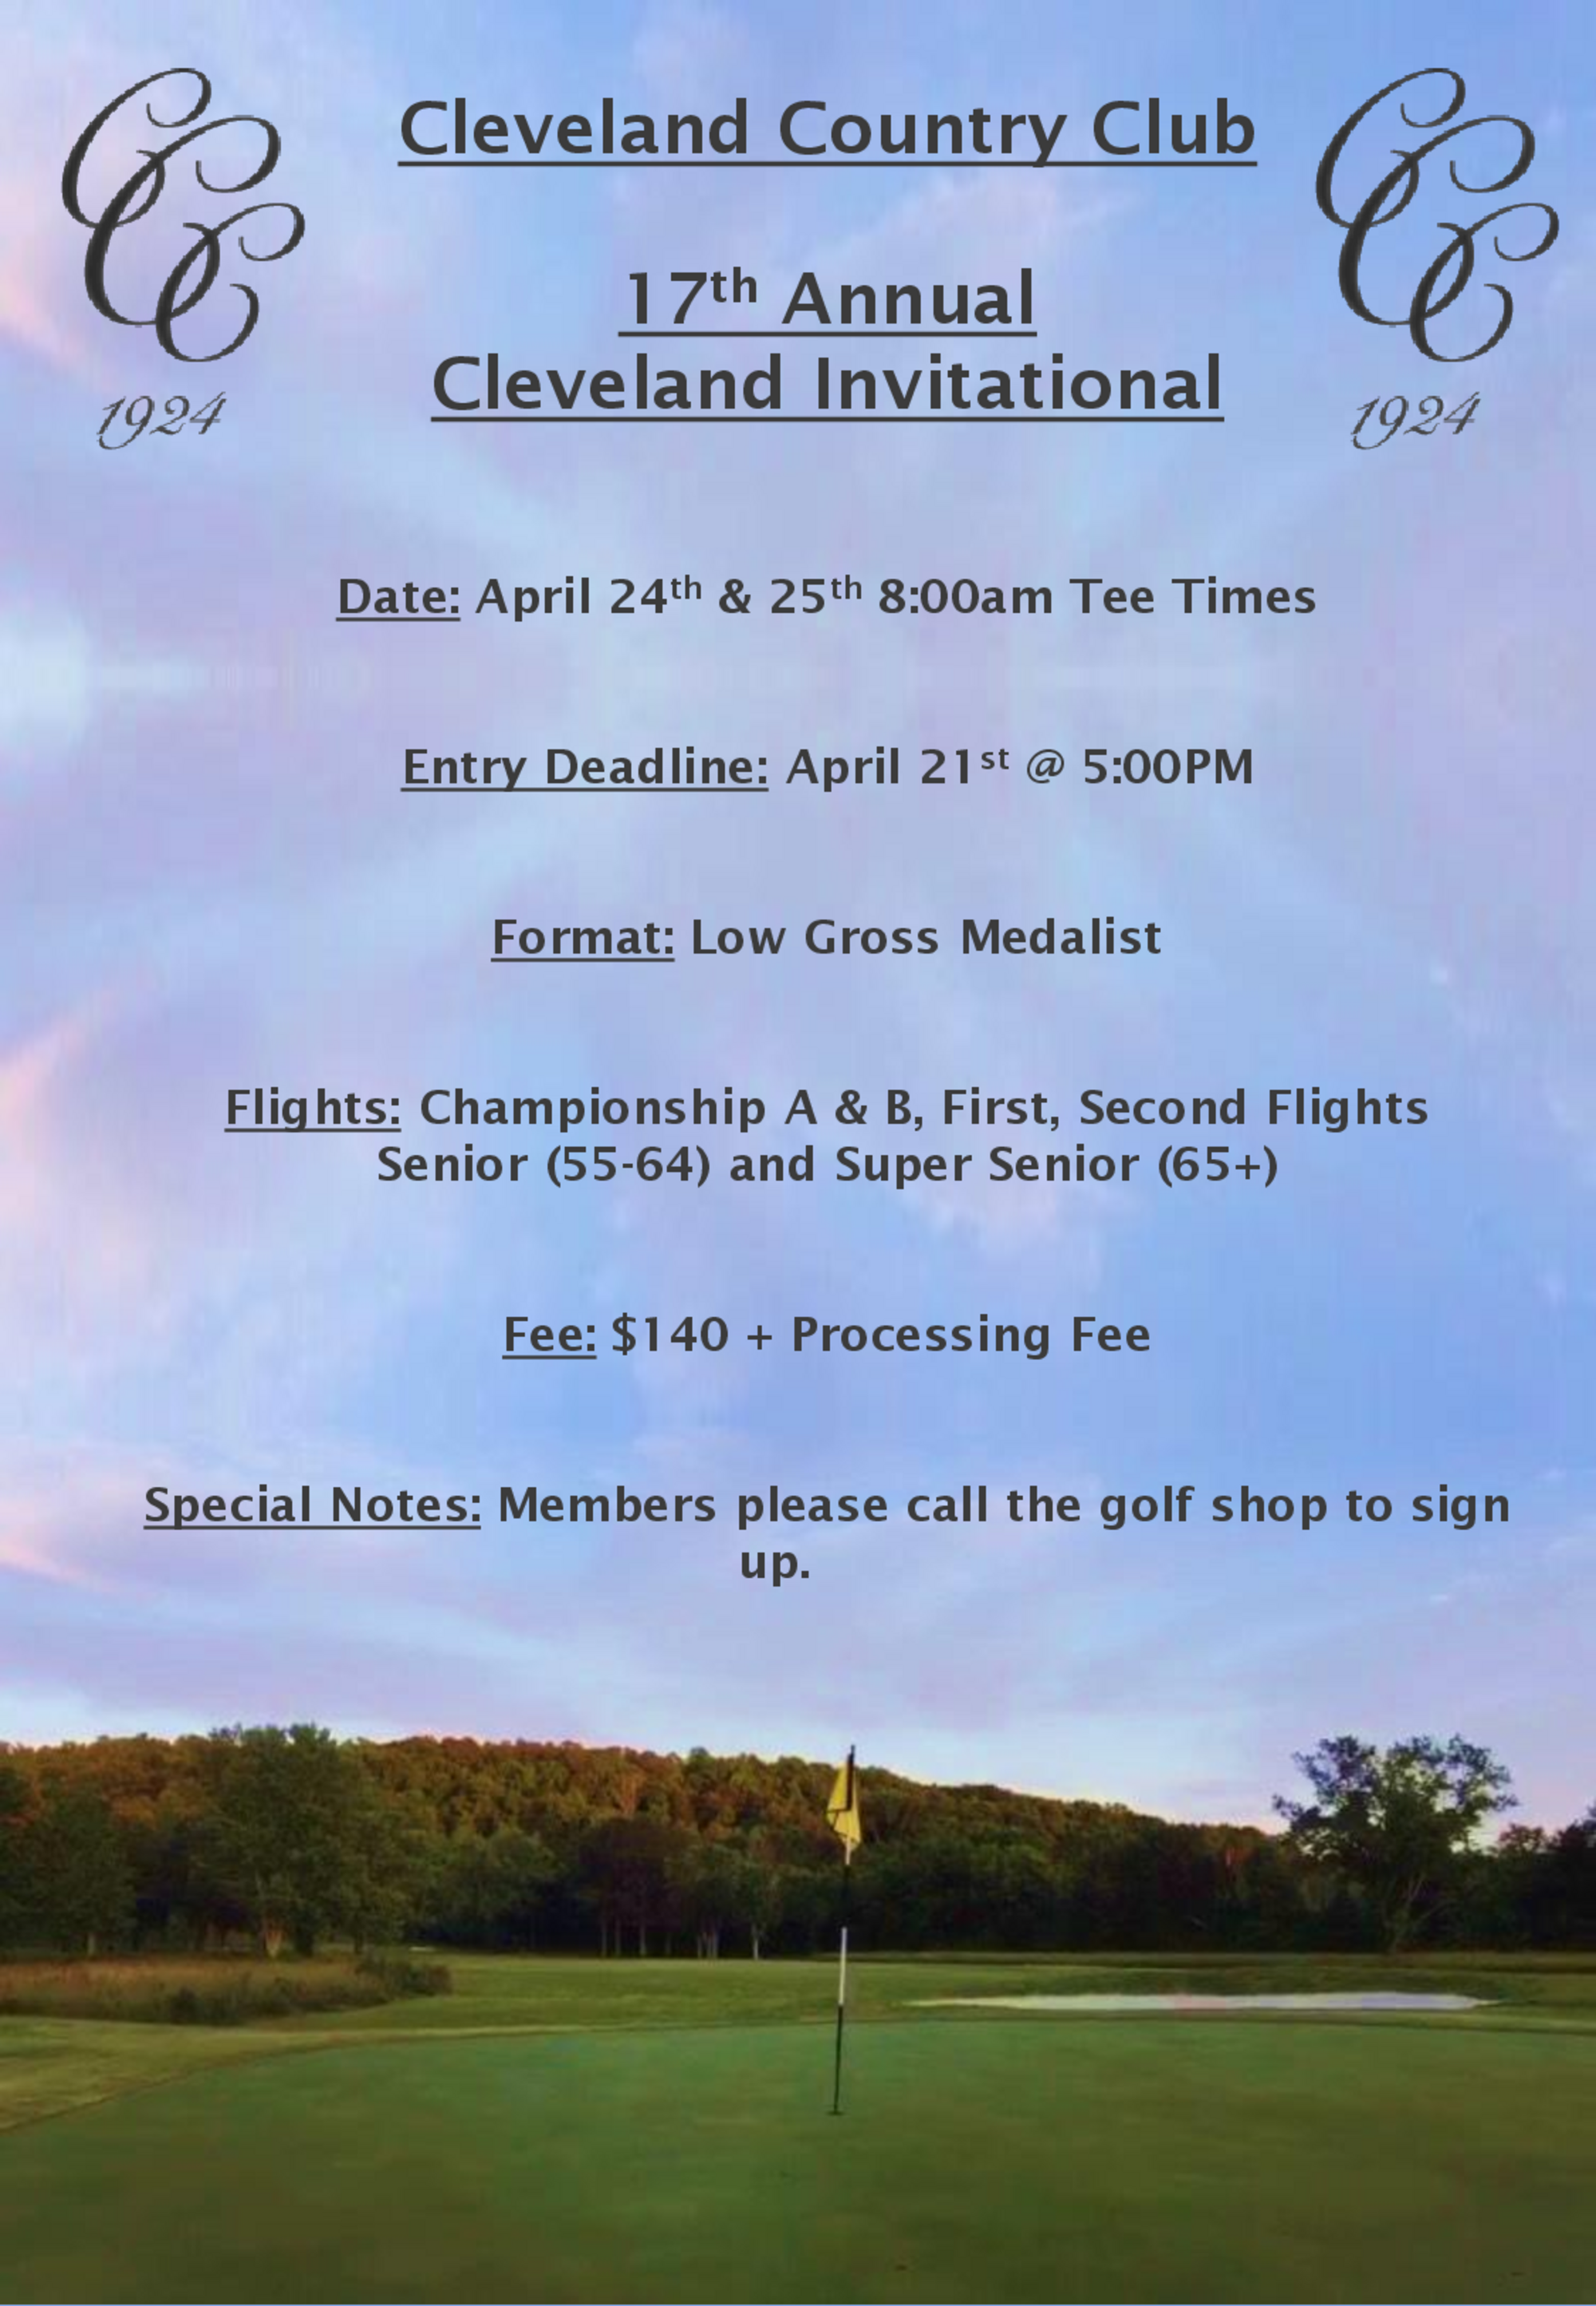 2021 ccc invite information sheet pdf 1